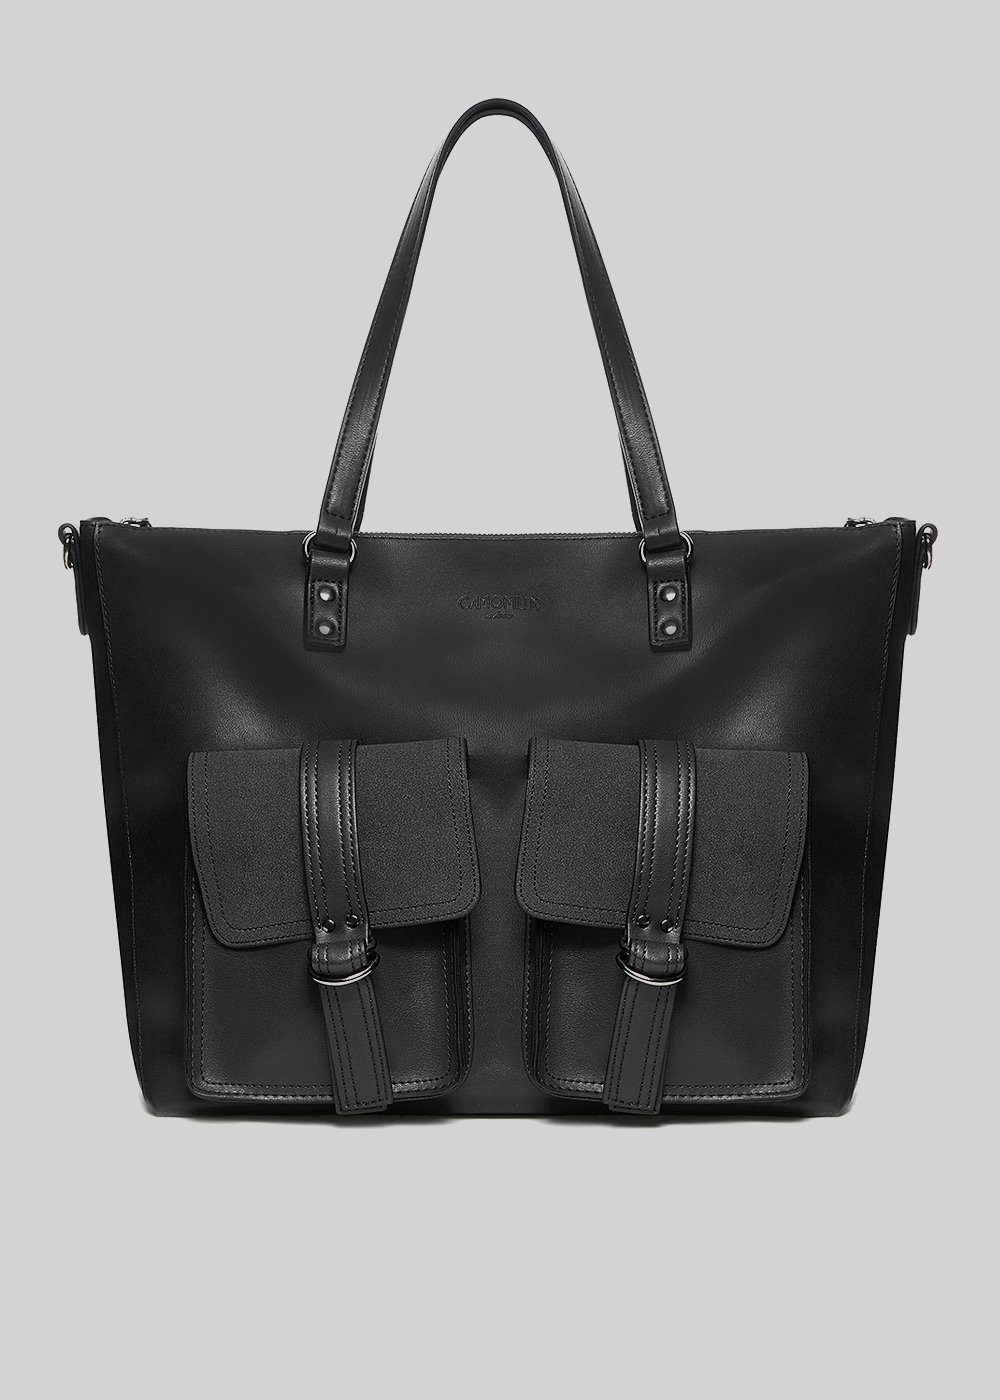 Borah bag in faux leather with pockets and removable shoulder strap - Black